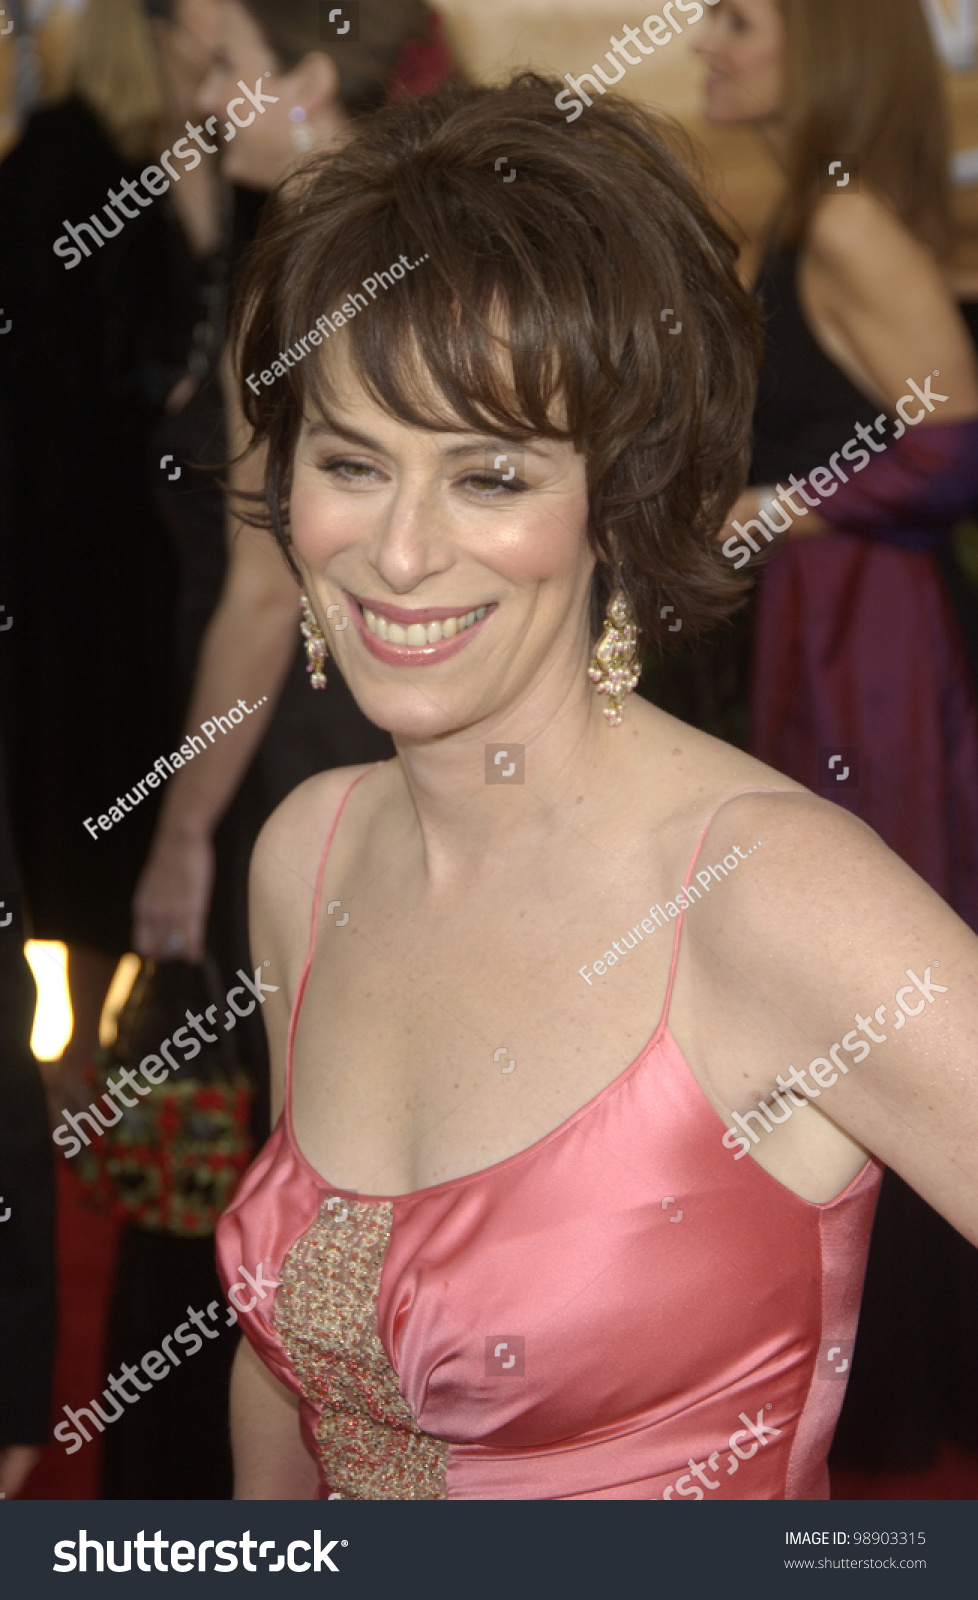 jane kaczmarek instagramjane kaczmarek breaking bad, jane kaczmarek on bryan cranston, jane kaczmarek, jane kaczmarek 2015, jane kaczmarek twitter, jane kaczmarek young, jane kaczmarek the middle, jane kaczmarek instagram, jane kaczmarek bradley whitford, jane kaczmarek net worth, jane kaczmarek big bang theory, jane kaczmarek murio